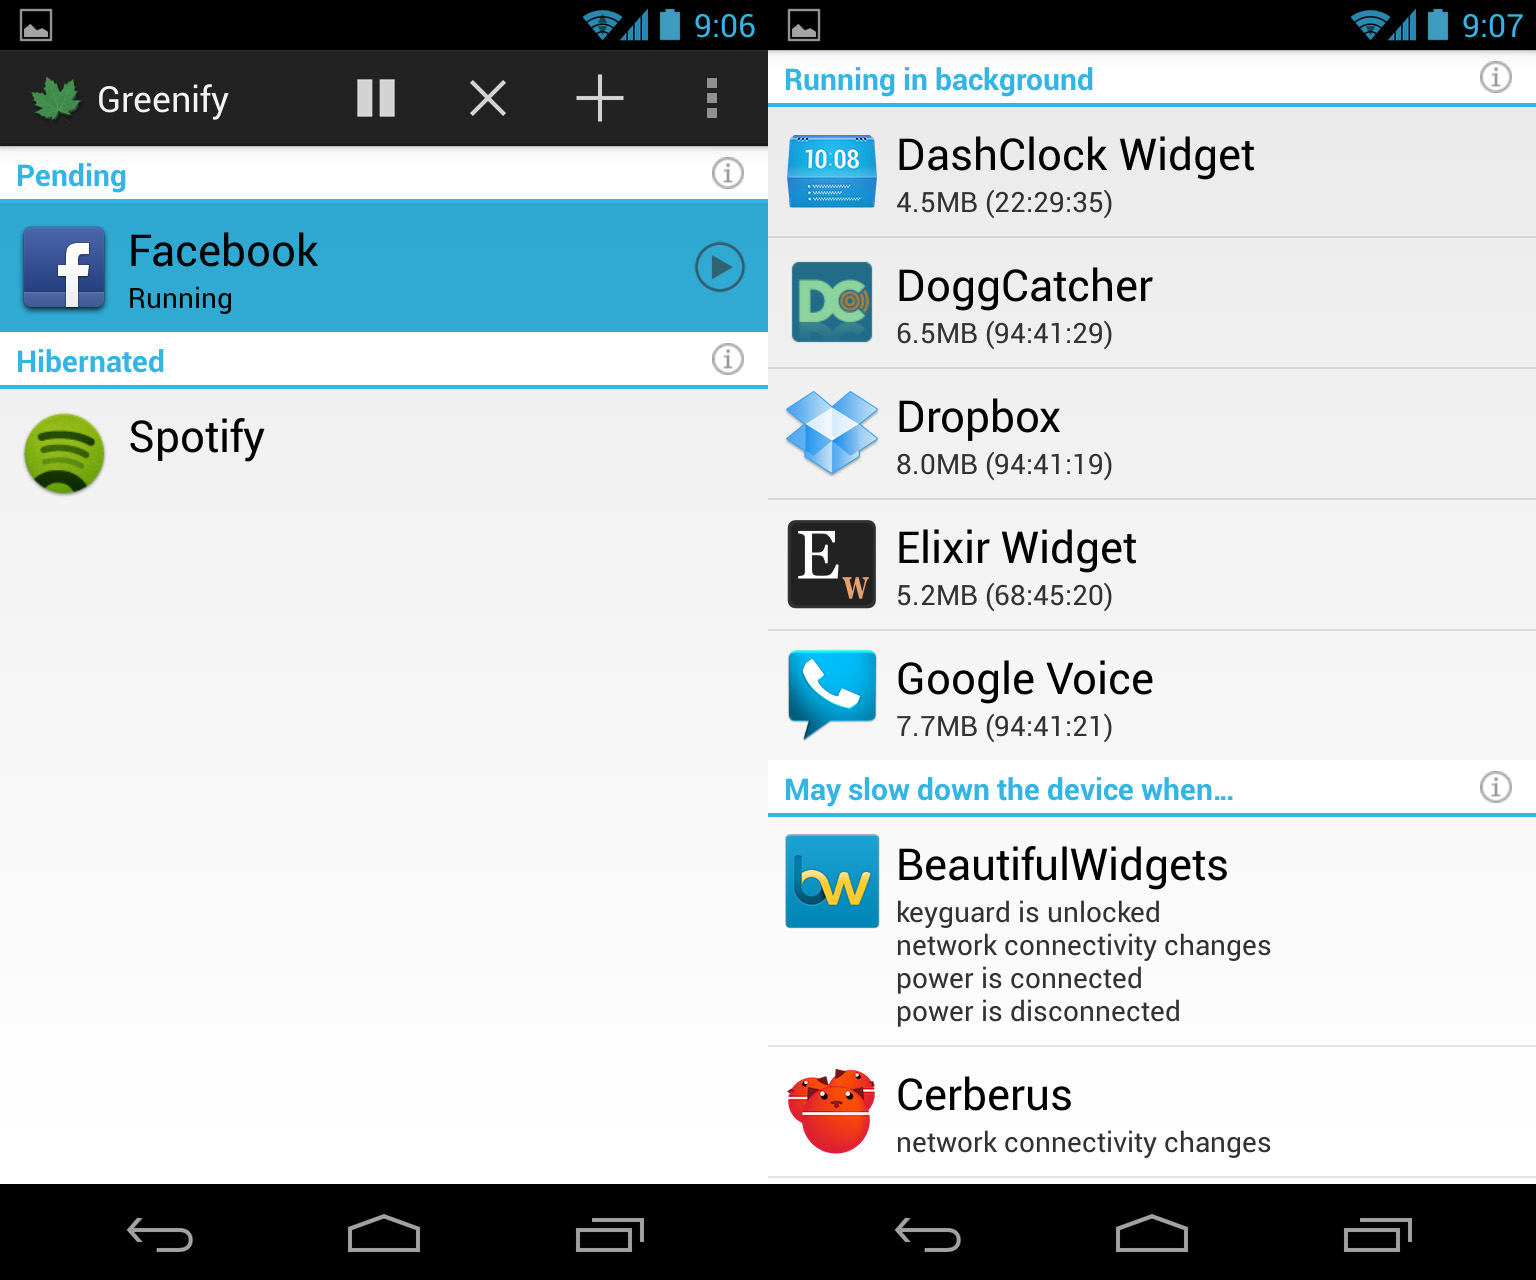 UberTechBlog: Greenify Your Android For Smoother Experience